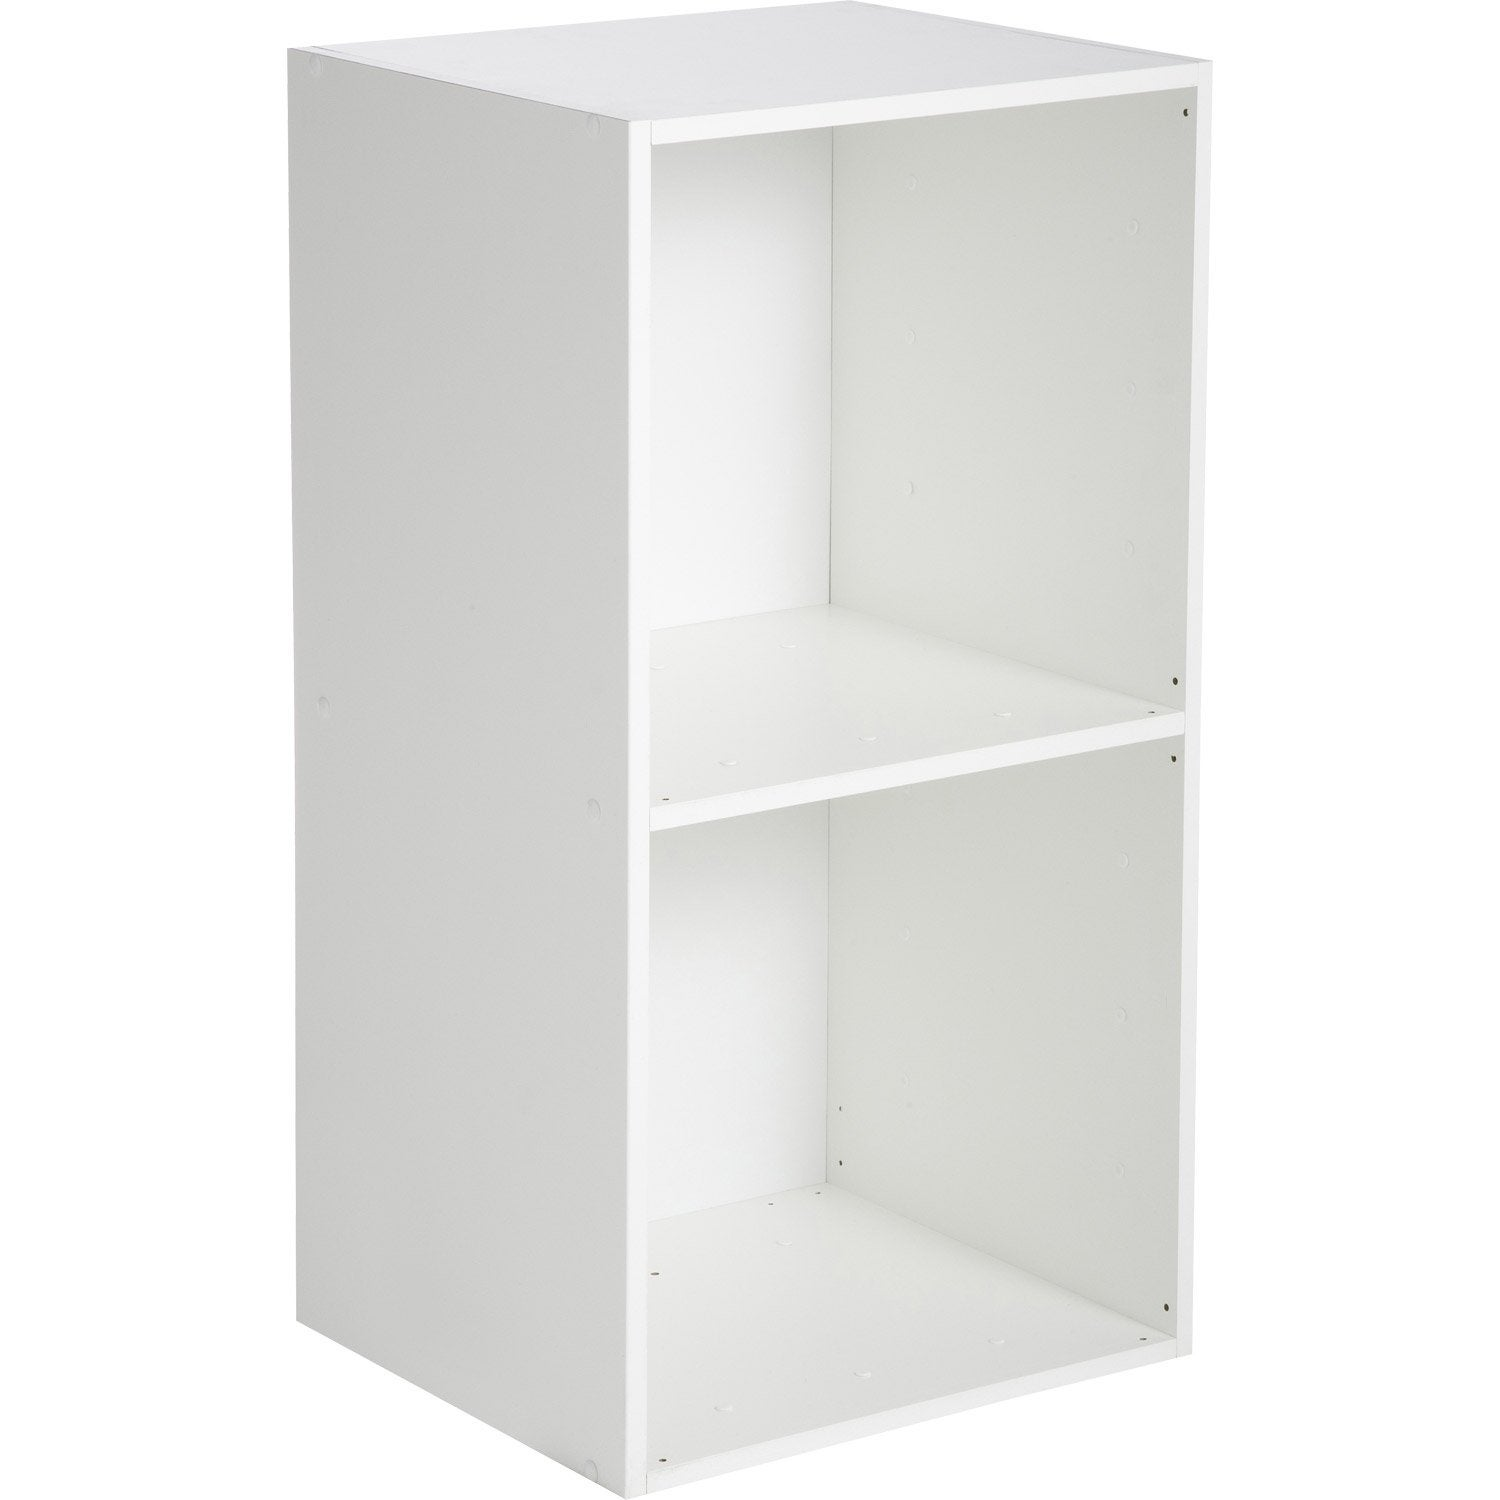 Etag re 2 cases multikaz blanc x x cm leroy merlin - Bloc etagere modulable ...